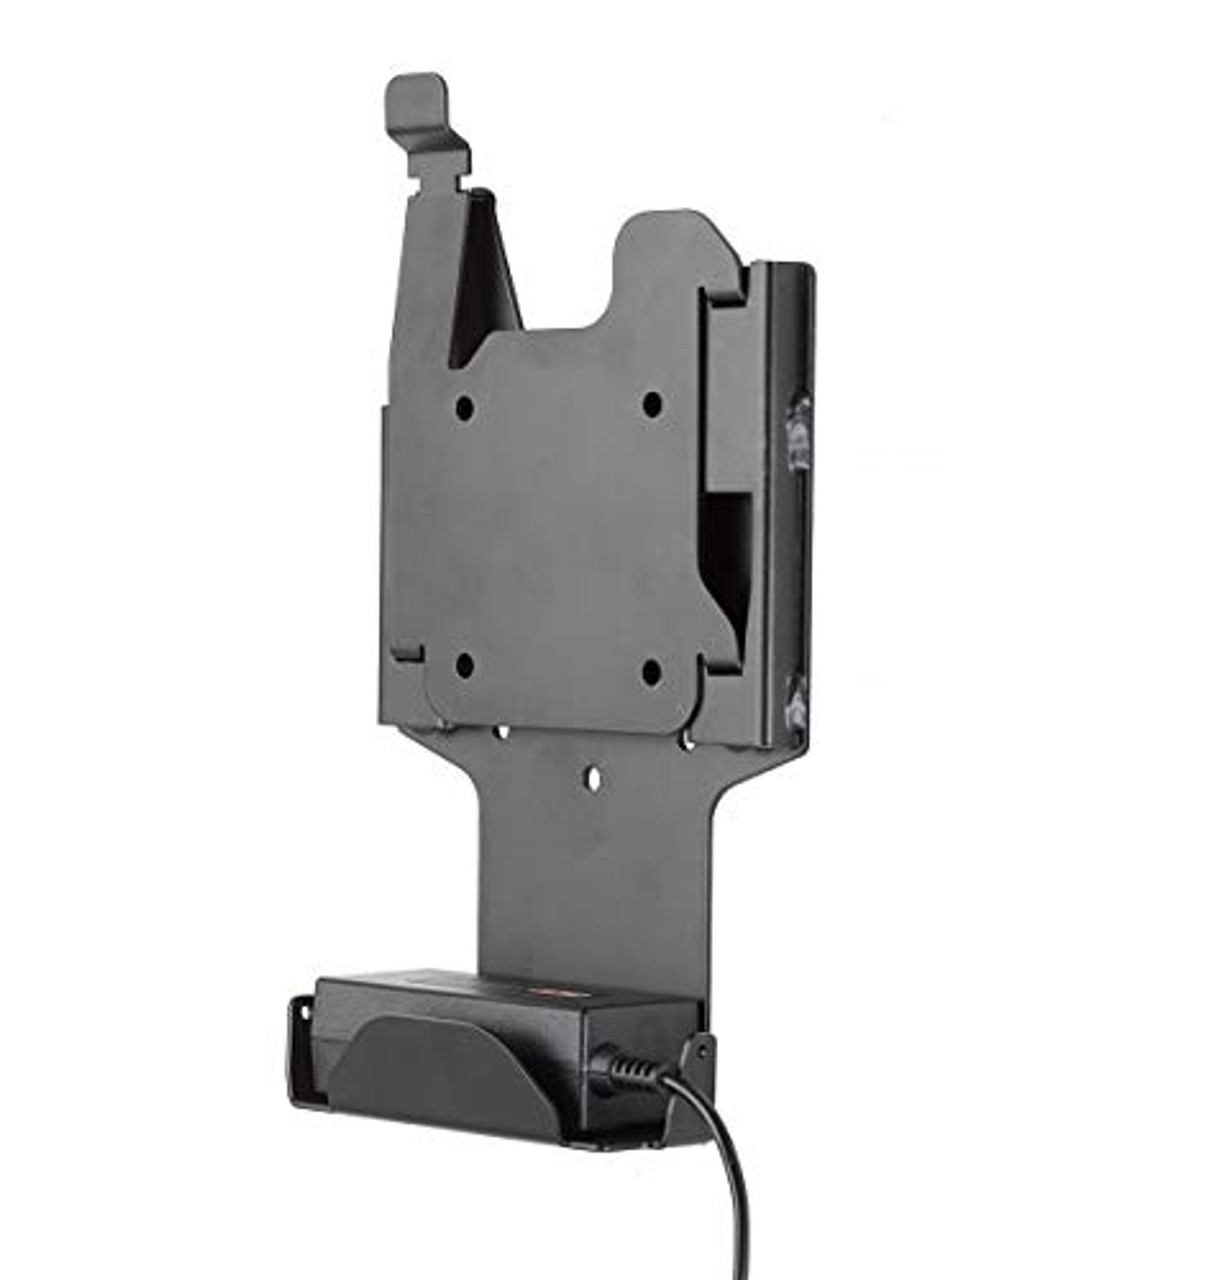 Quick Release Wall Mount for GETAC F110. Two-Piece Quick Release Adapter Plate with Power Supply Holder. (7160-0879) | 0414XL34AD0